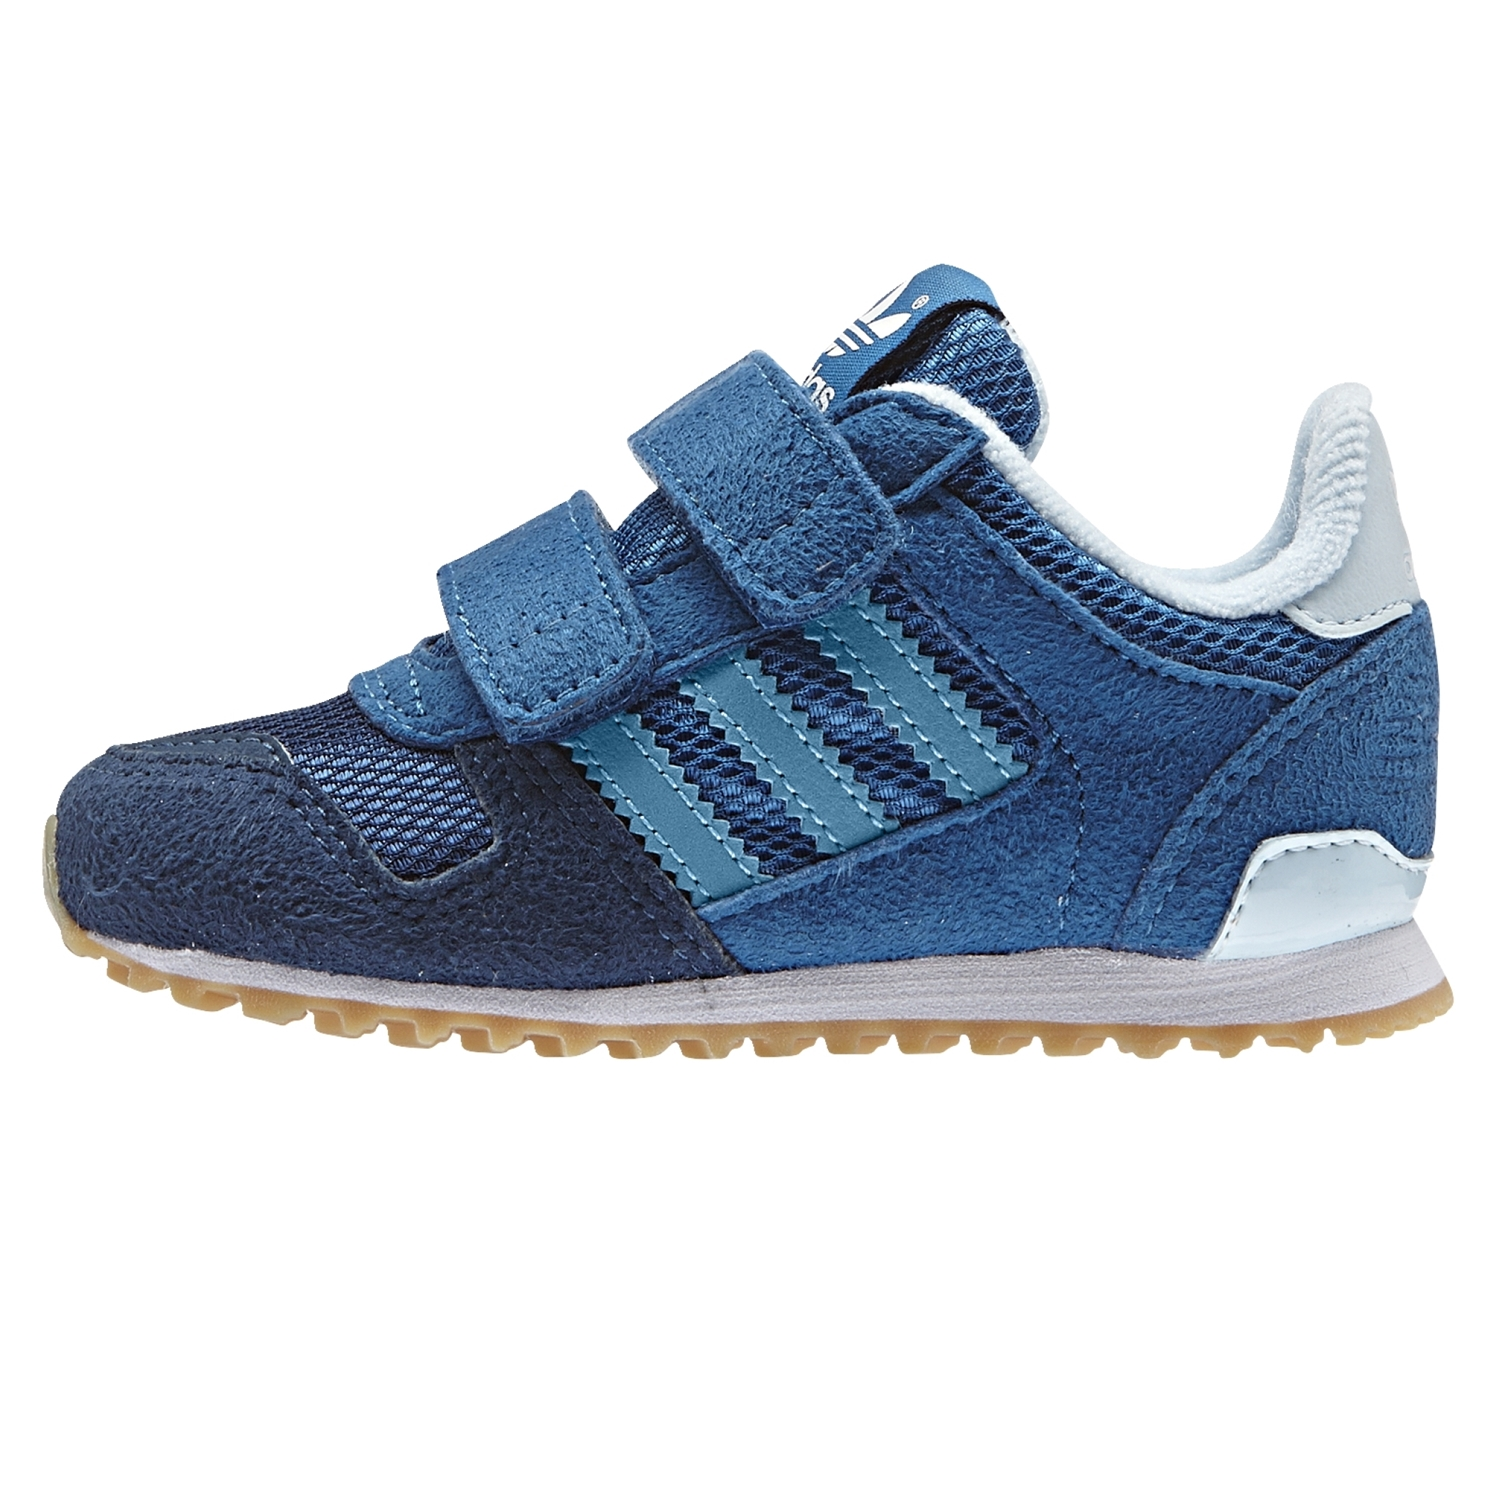 separation shoes 83d0b 32f4a Adidas Originals ZX 700 CF Inf (azul)